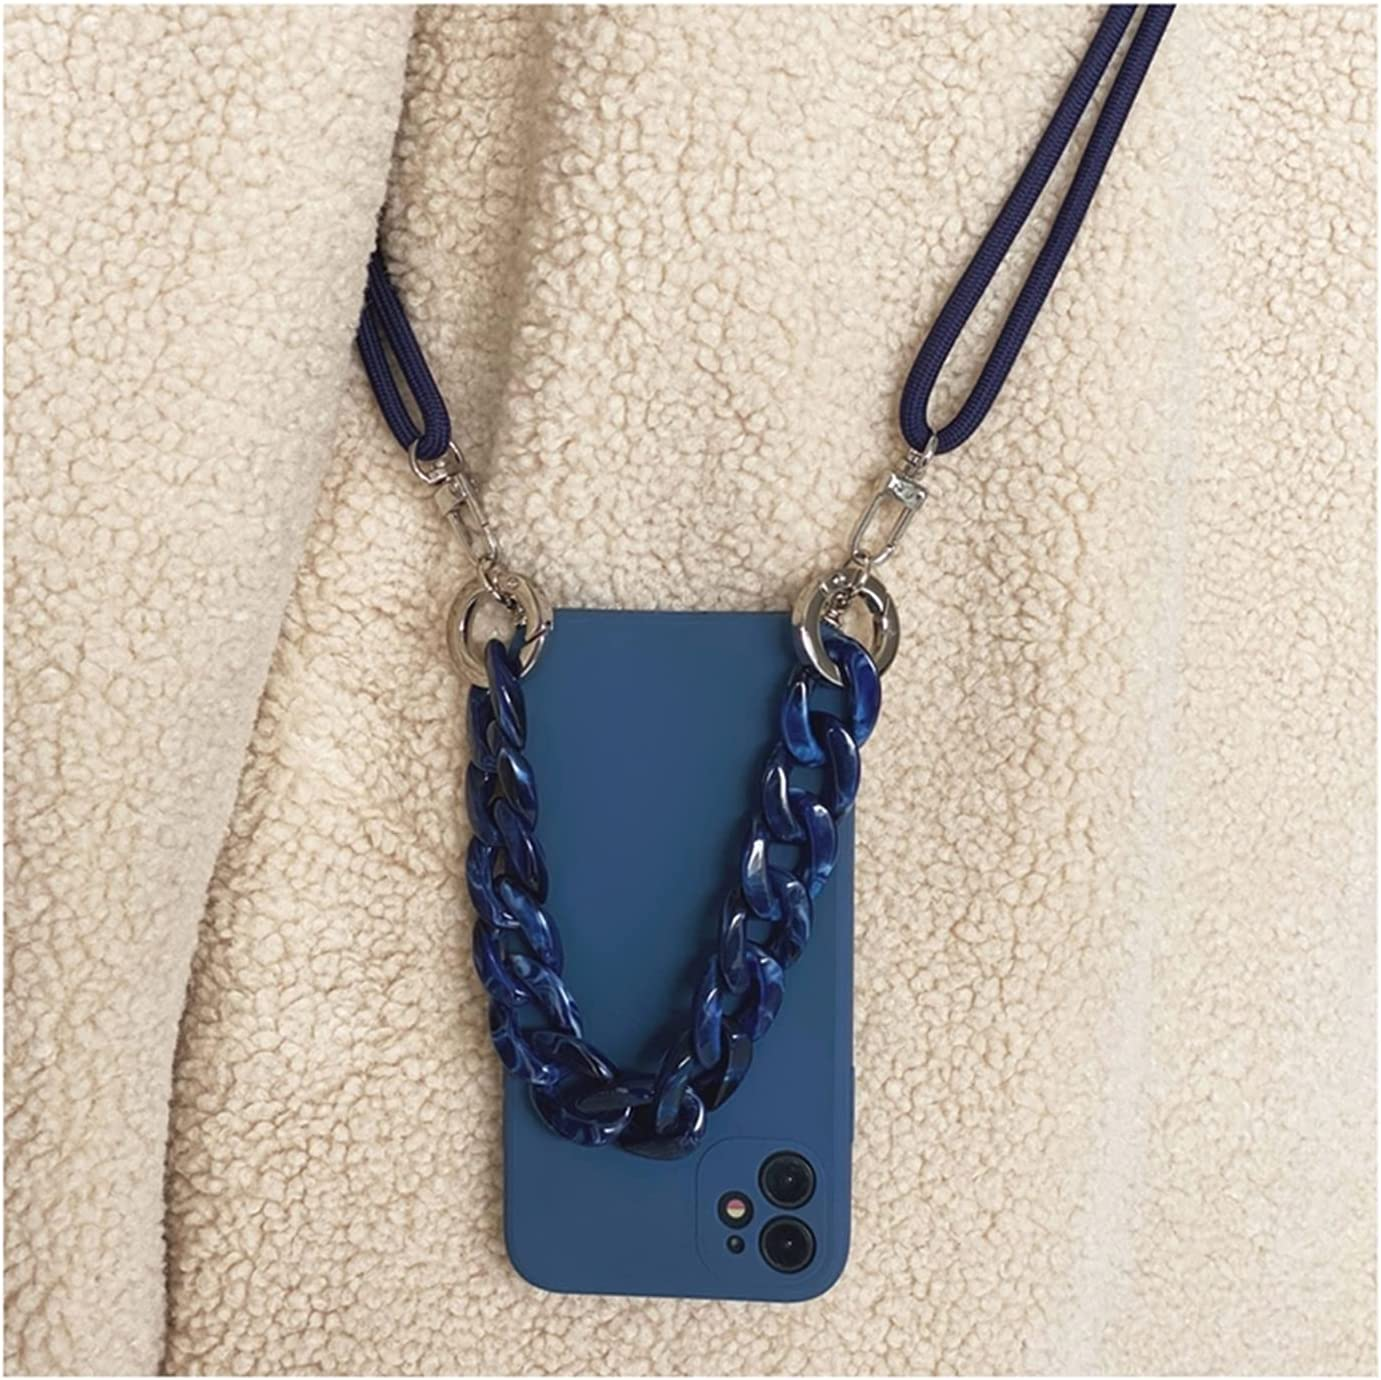 YIZHAOYZ Crossbody Lanyard Necklace Marble Chain Silicone case for iPhone 12 Pro Max 12 Mini 11 Pro Max XR X XS Max 7 8 Plus SE 2020 (Color : F, Size : for iPhone XR)